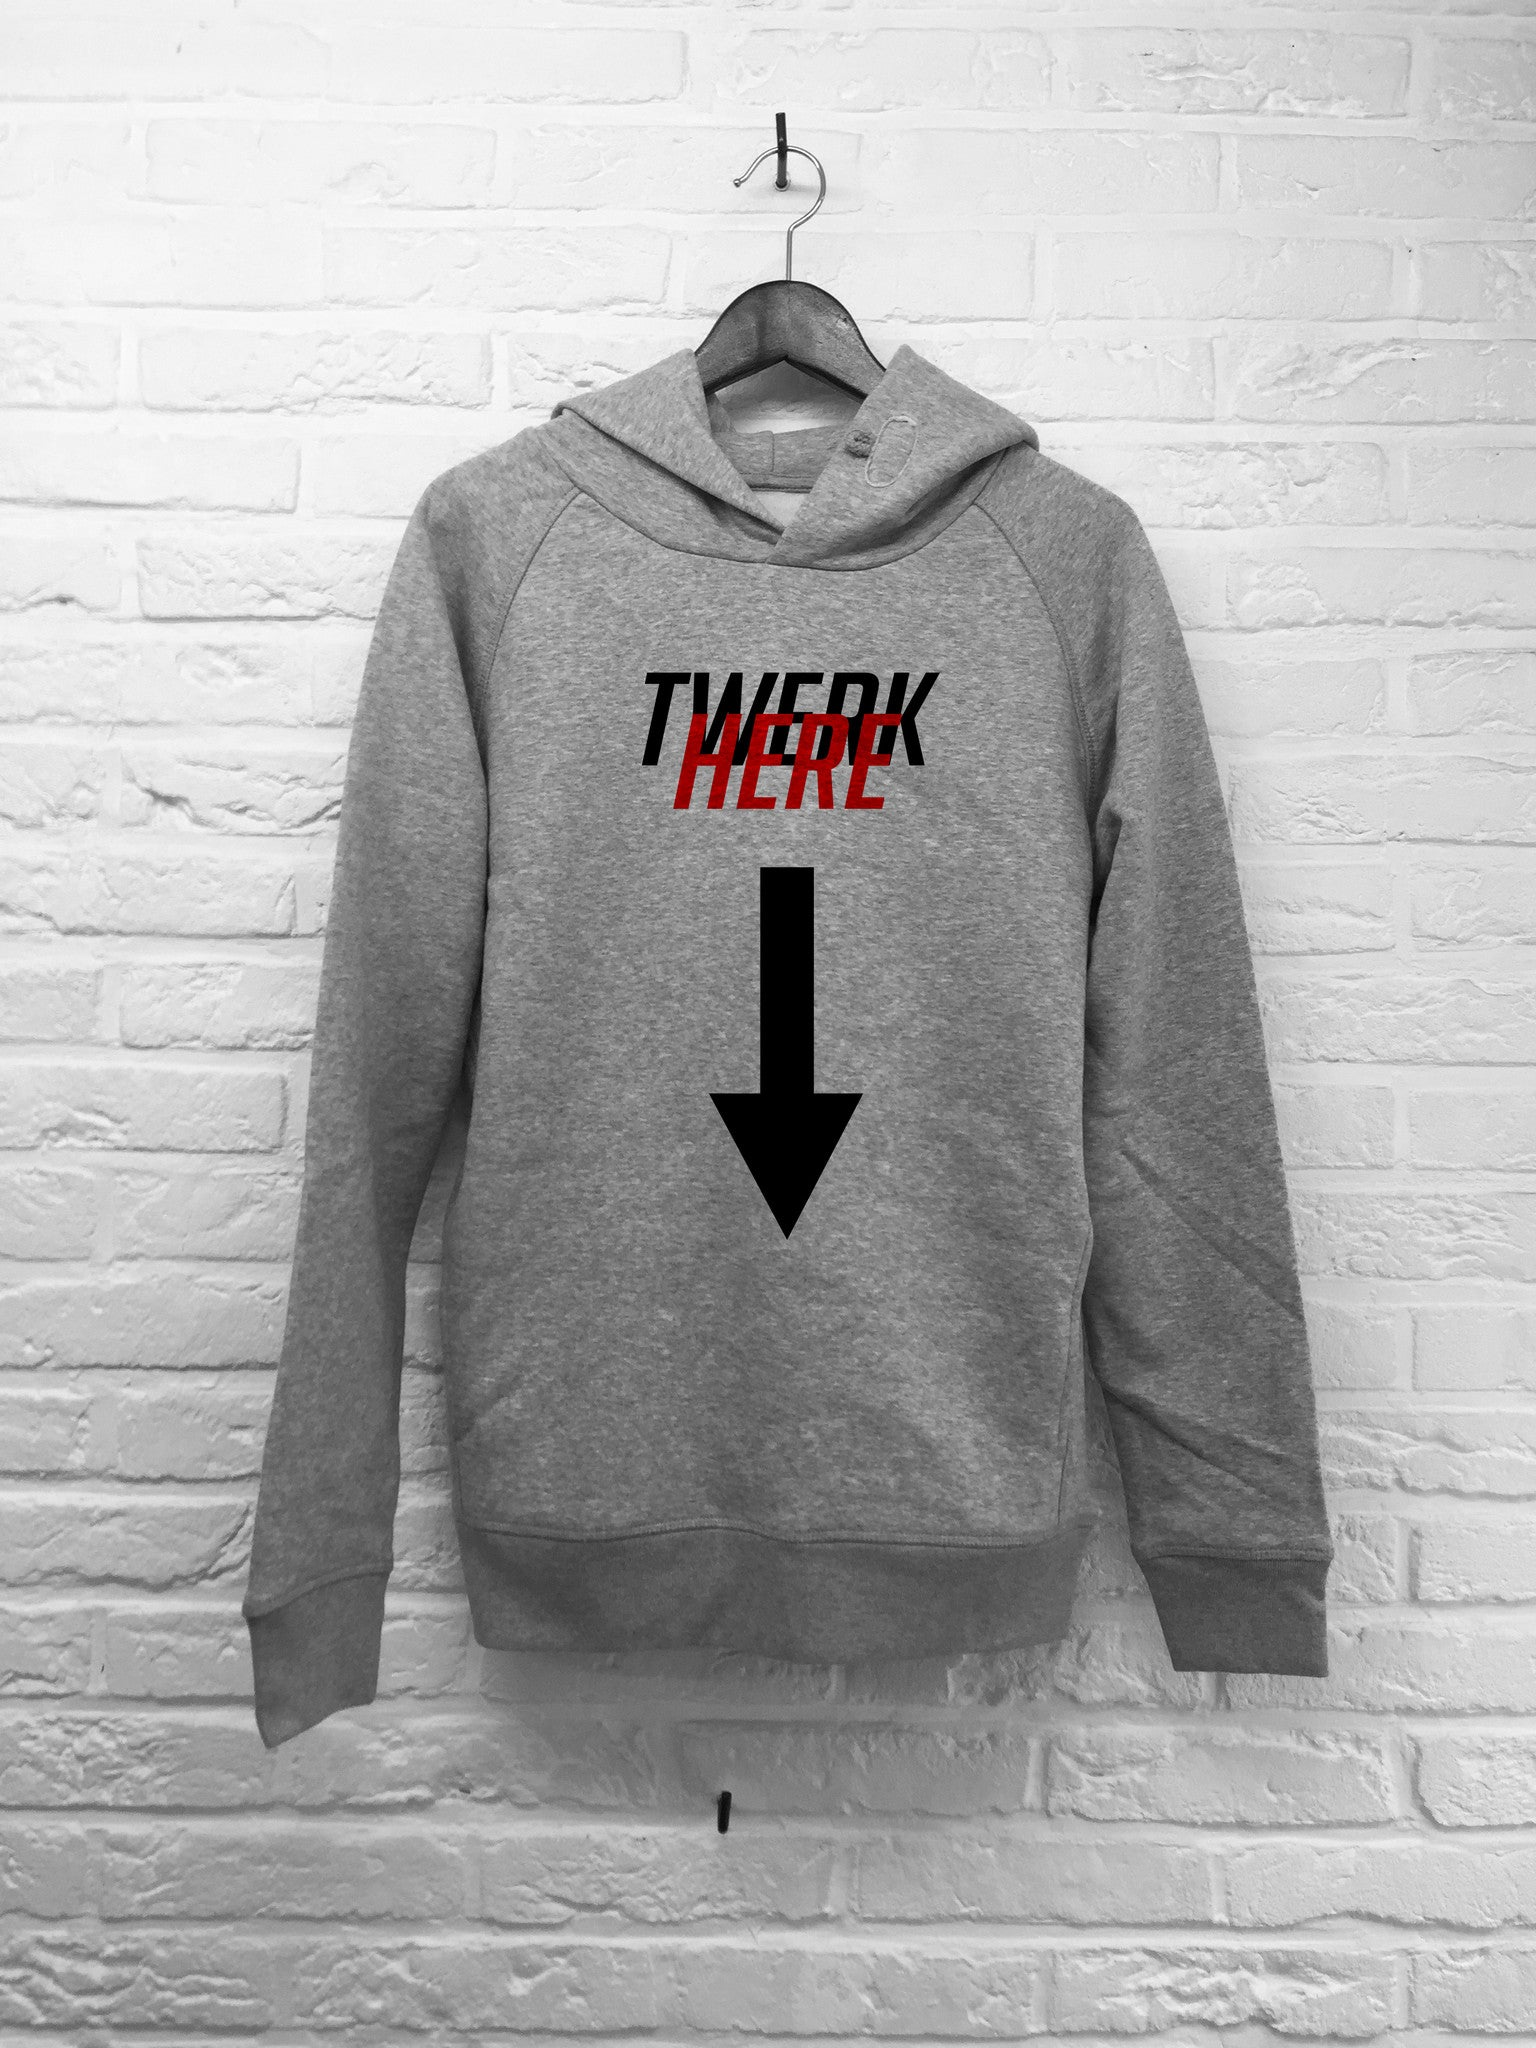 Twerk Here - Hoodies Deluxe-Sweat shirts-Atelier Amelot